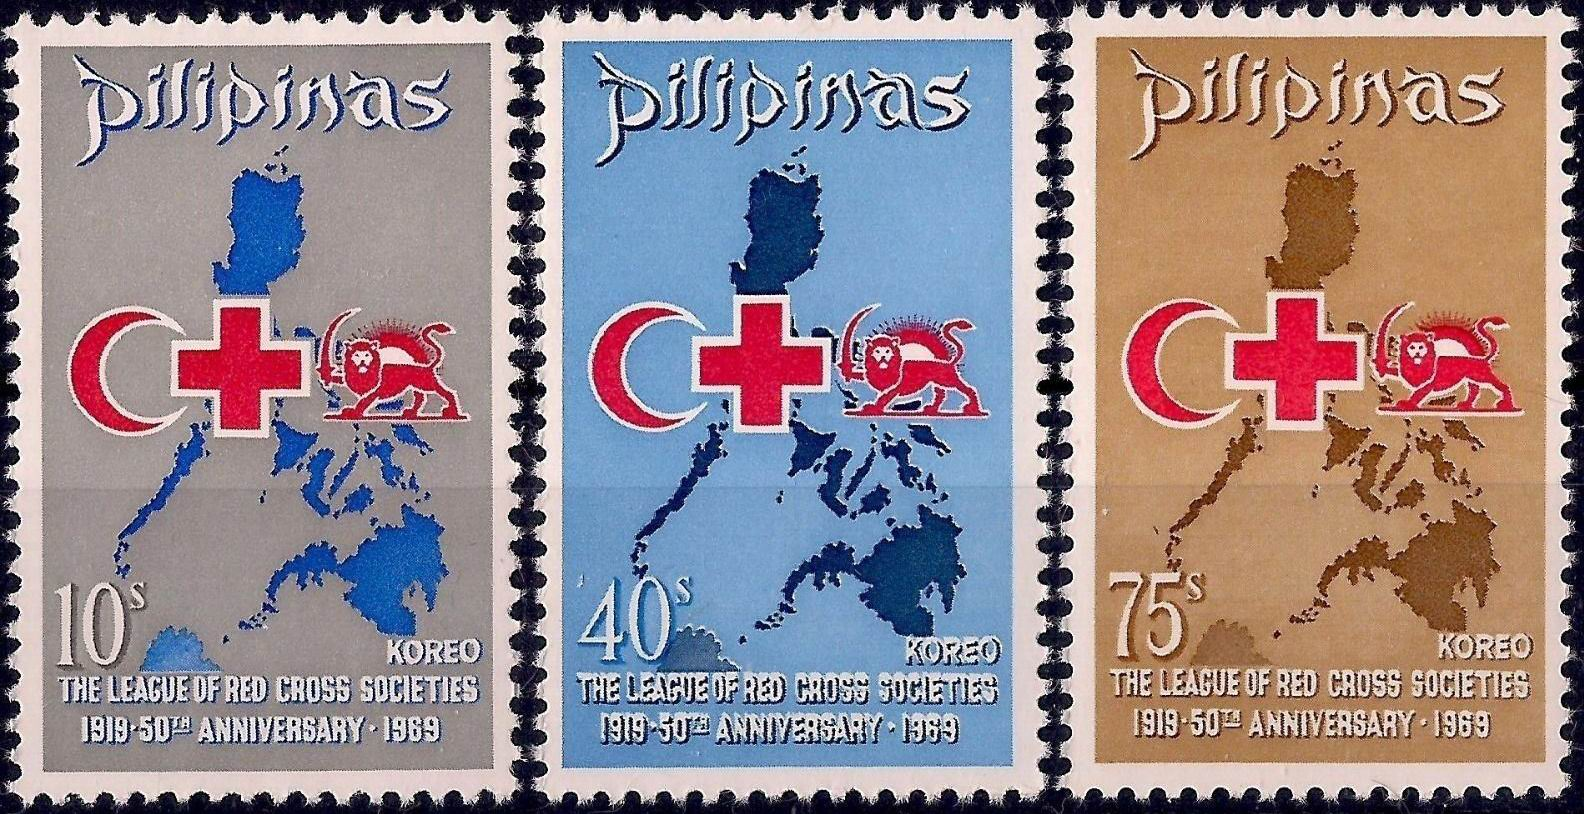 Philippines 1969 Stamps Anniversary League Of Red Cross Society